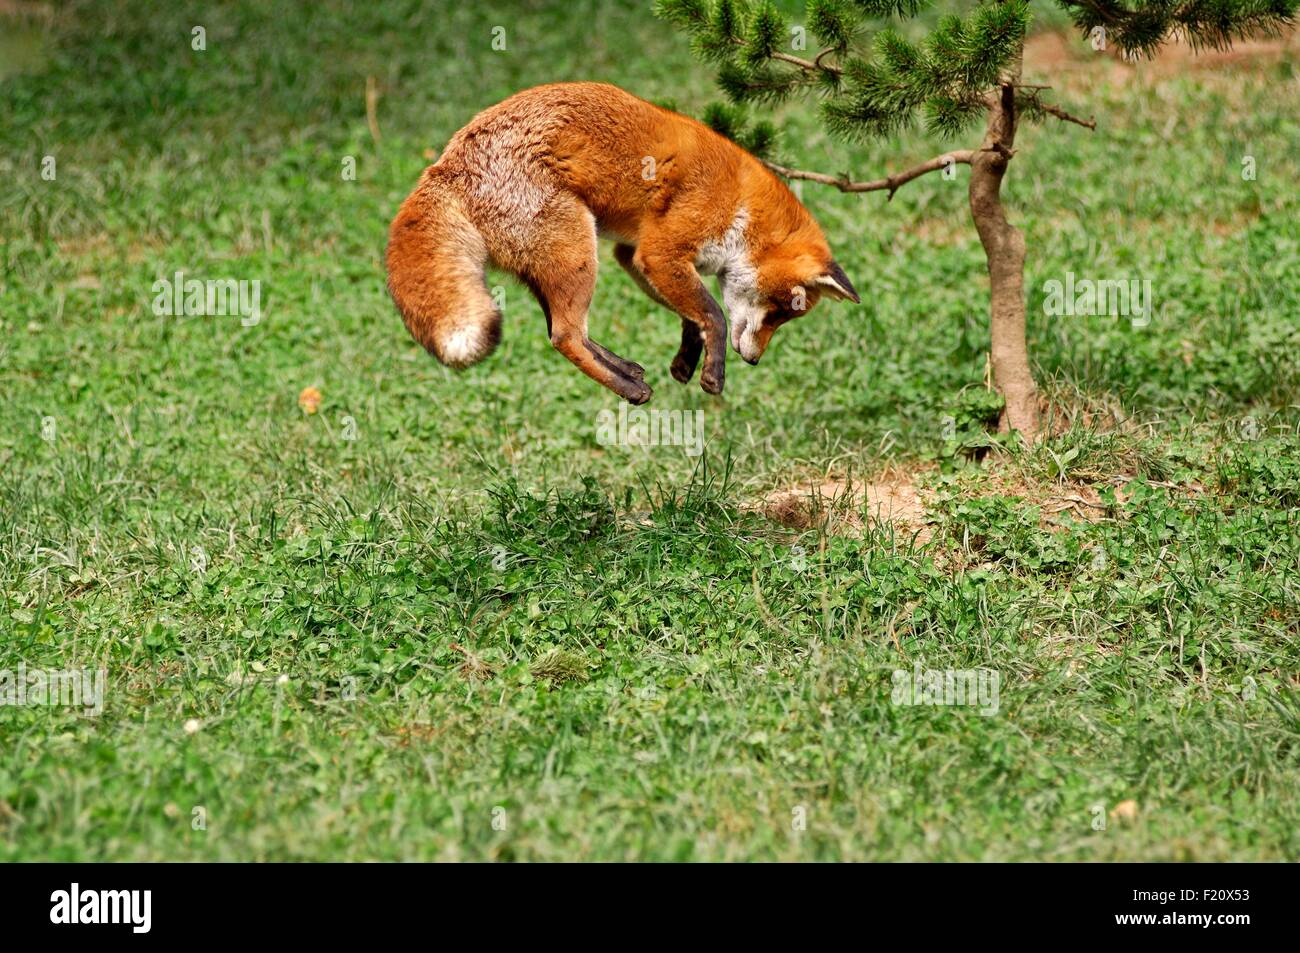 red fox vulpes vulpes pouncing on mouse stock photo royalty